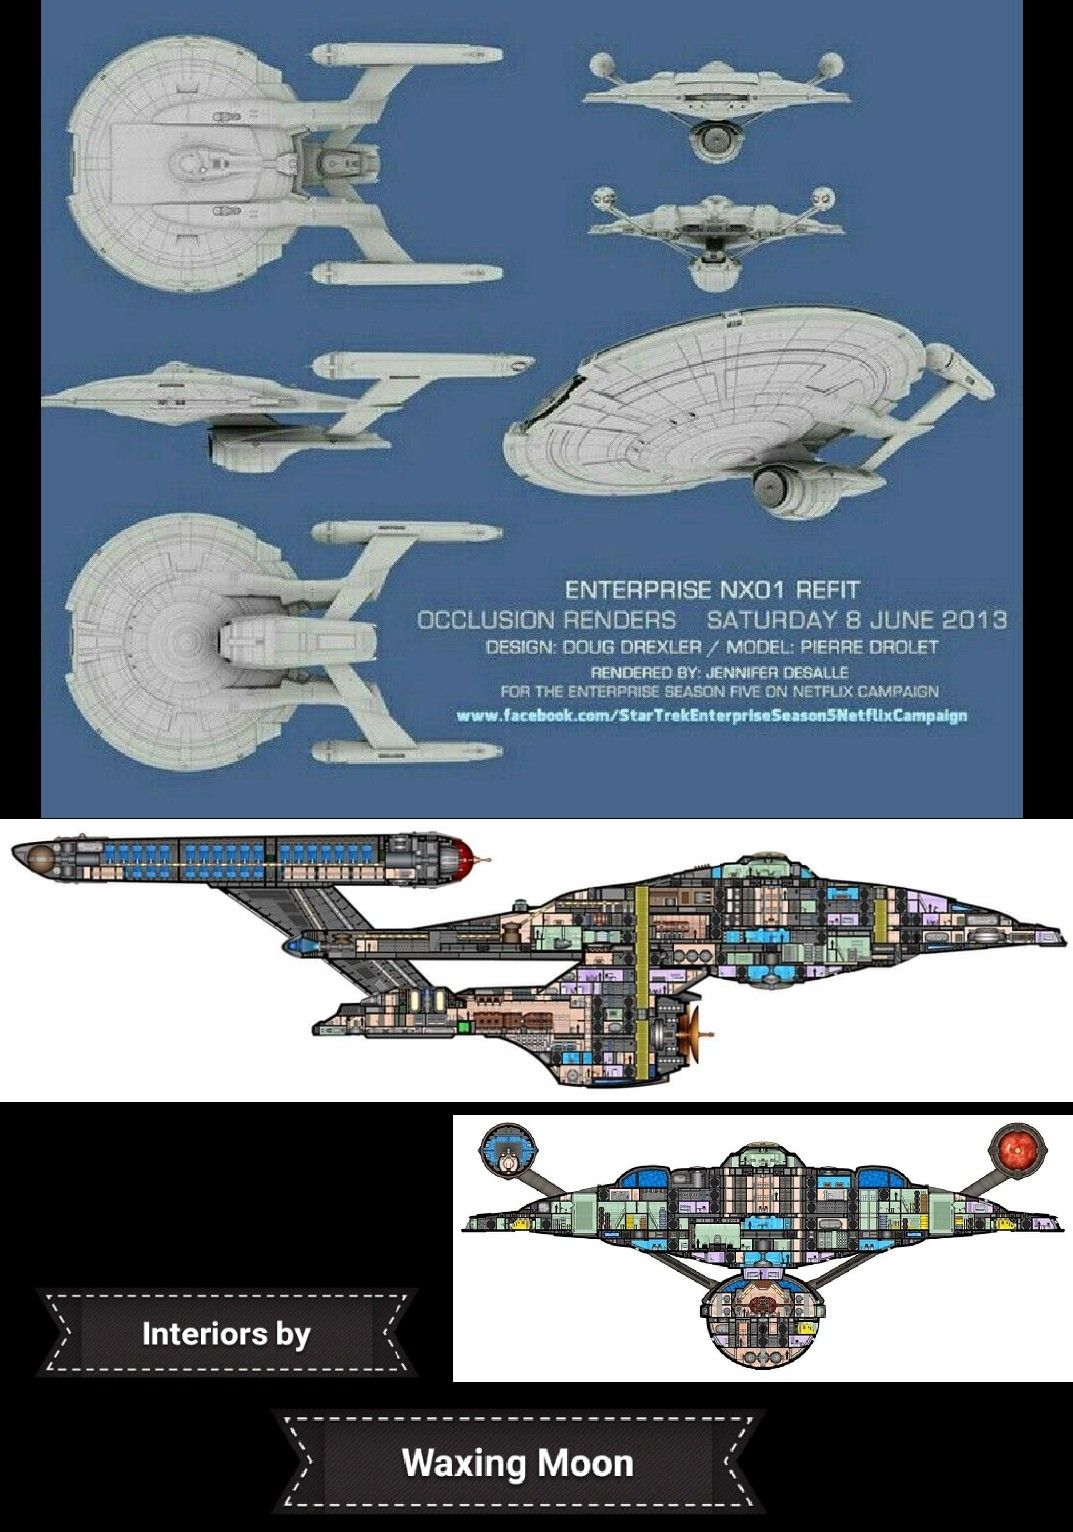 Combo Images Of The Nx 01 Enterprise Refit Designed By Doug Drexler Interior Decks By Waxing Moon Star Trek Starships Star Trek Ships Star Trek Universe